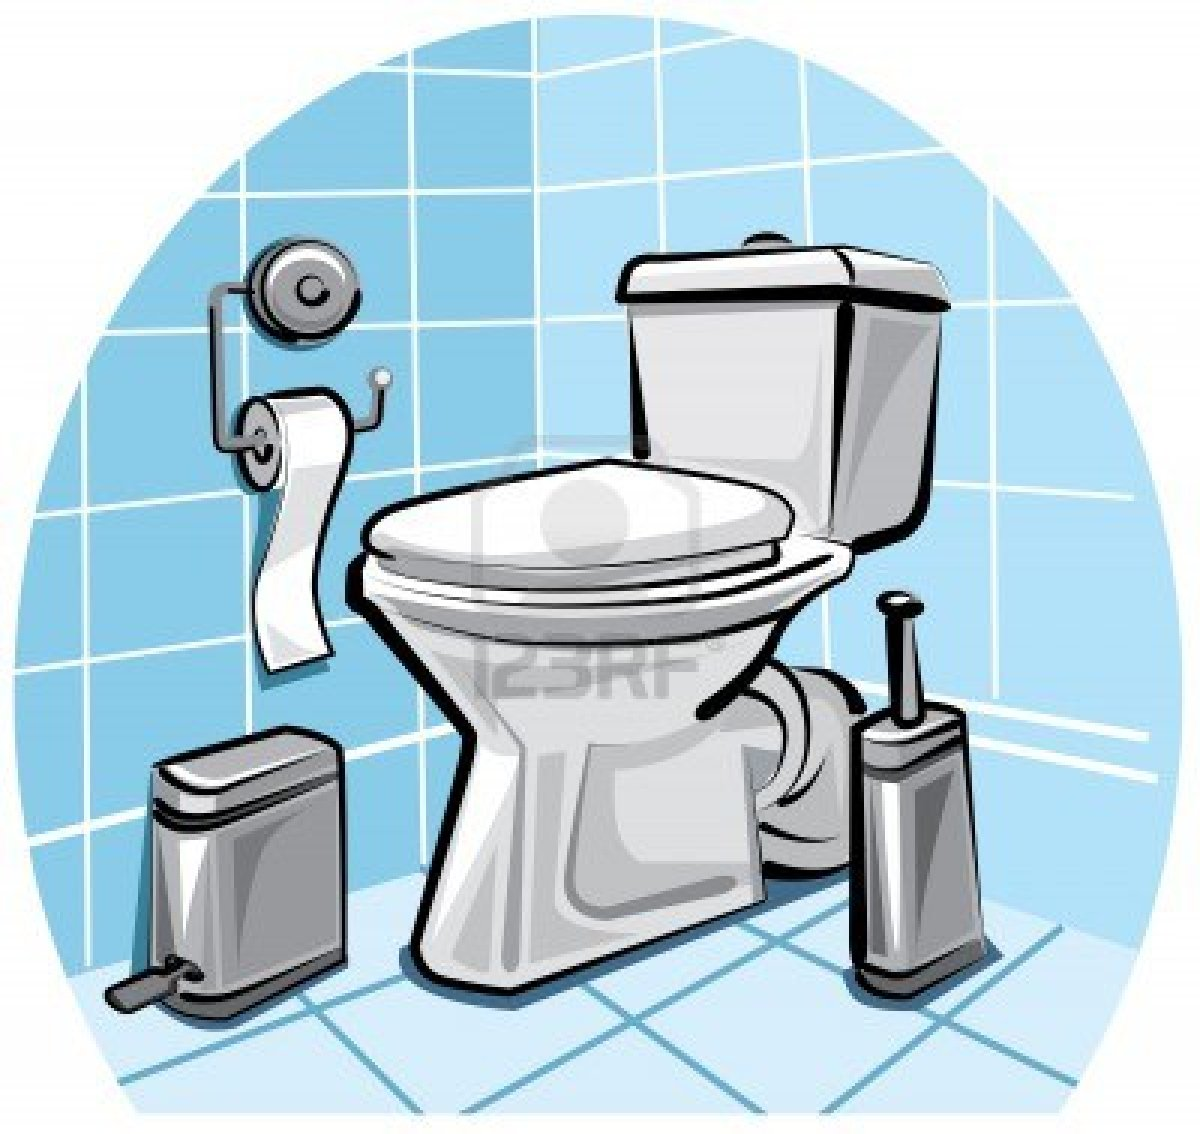 Bathroom Clipart | Free download best Bathroom Clipart on ... for bathroom sink clipart  113cpg